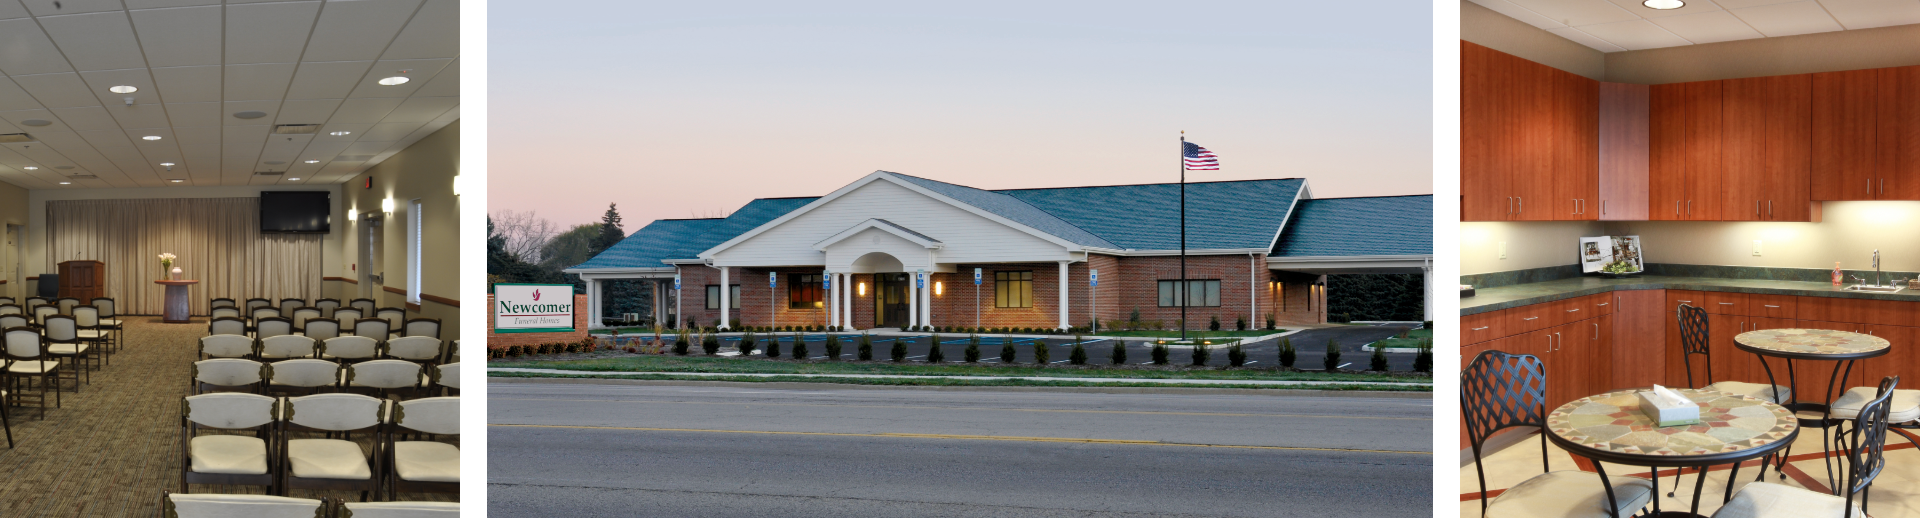 Newcomer Funeral Home Toledo